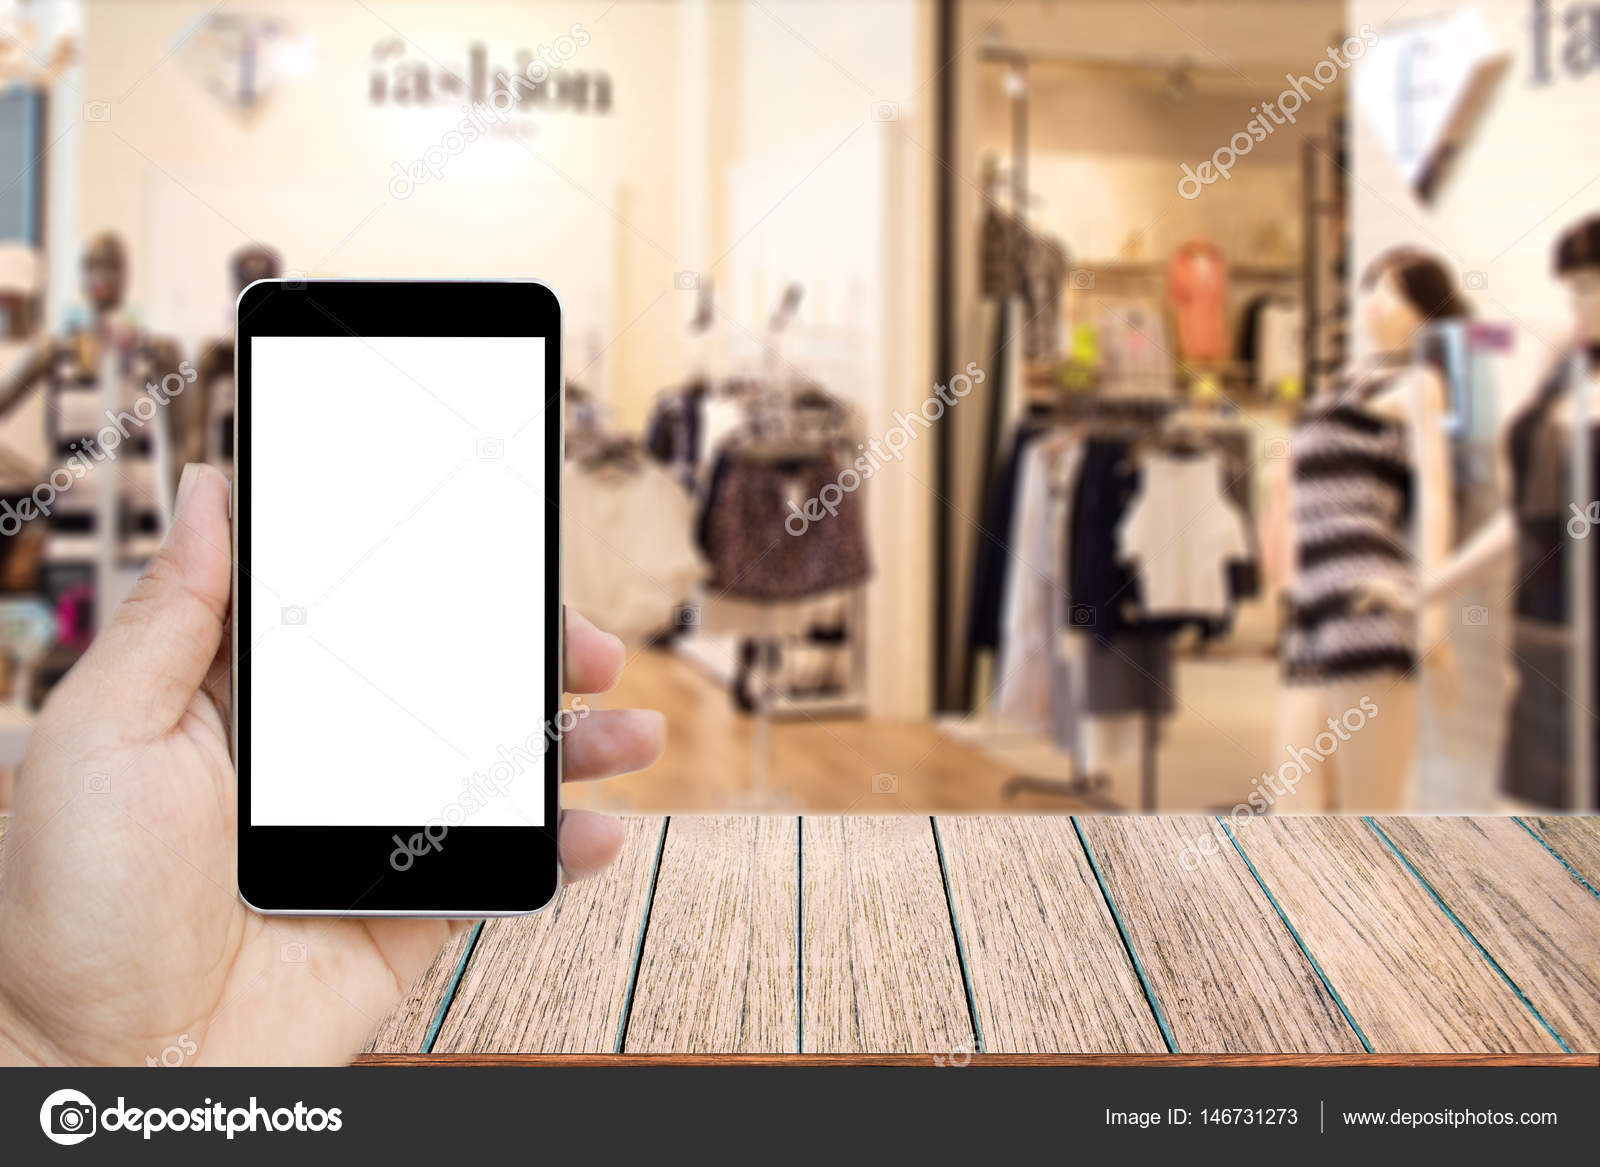 Mock up image of hand holding black mobile phone with blank white